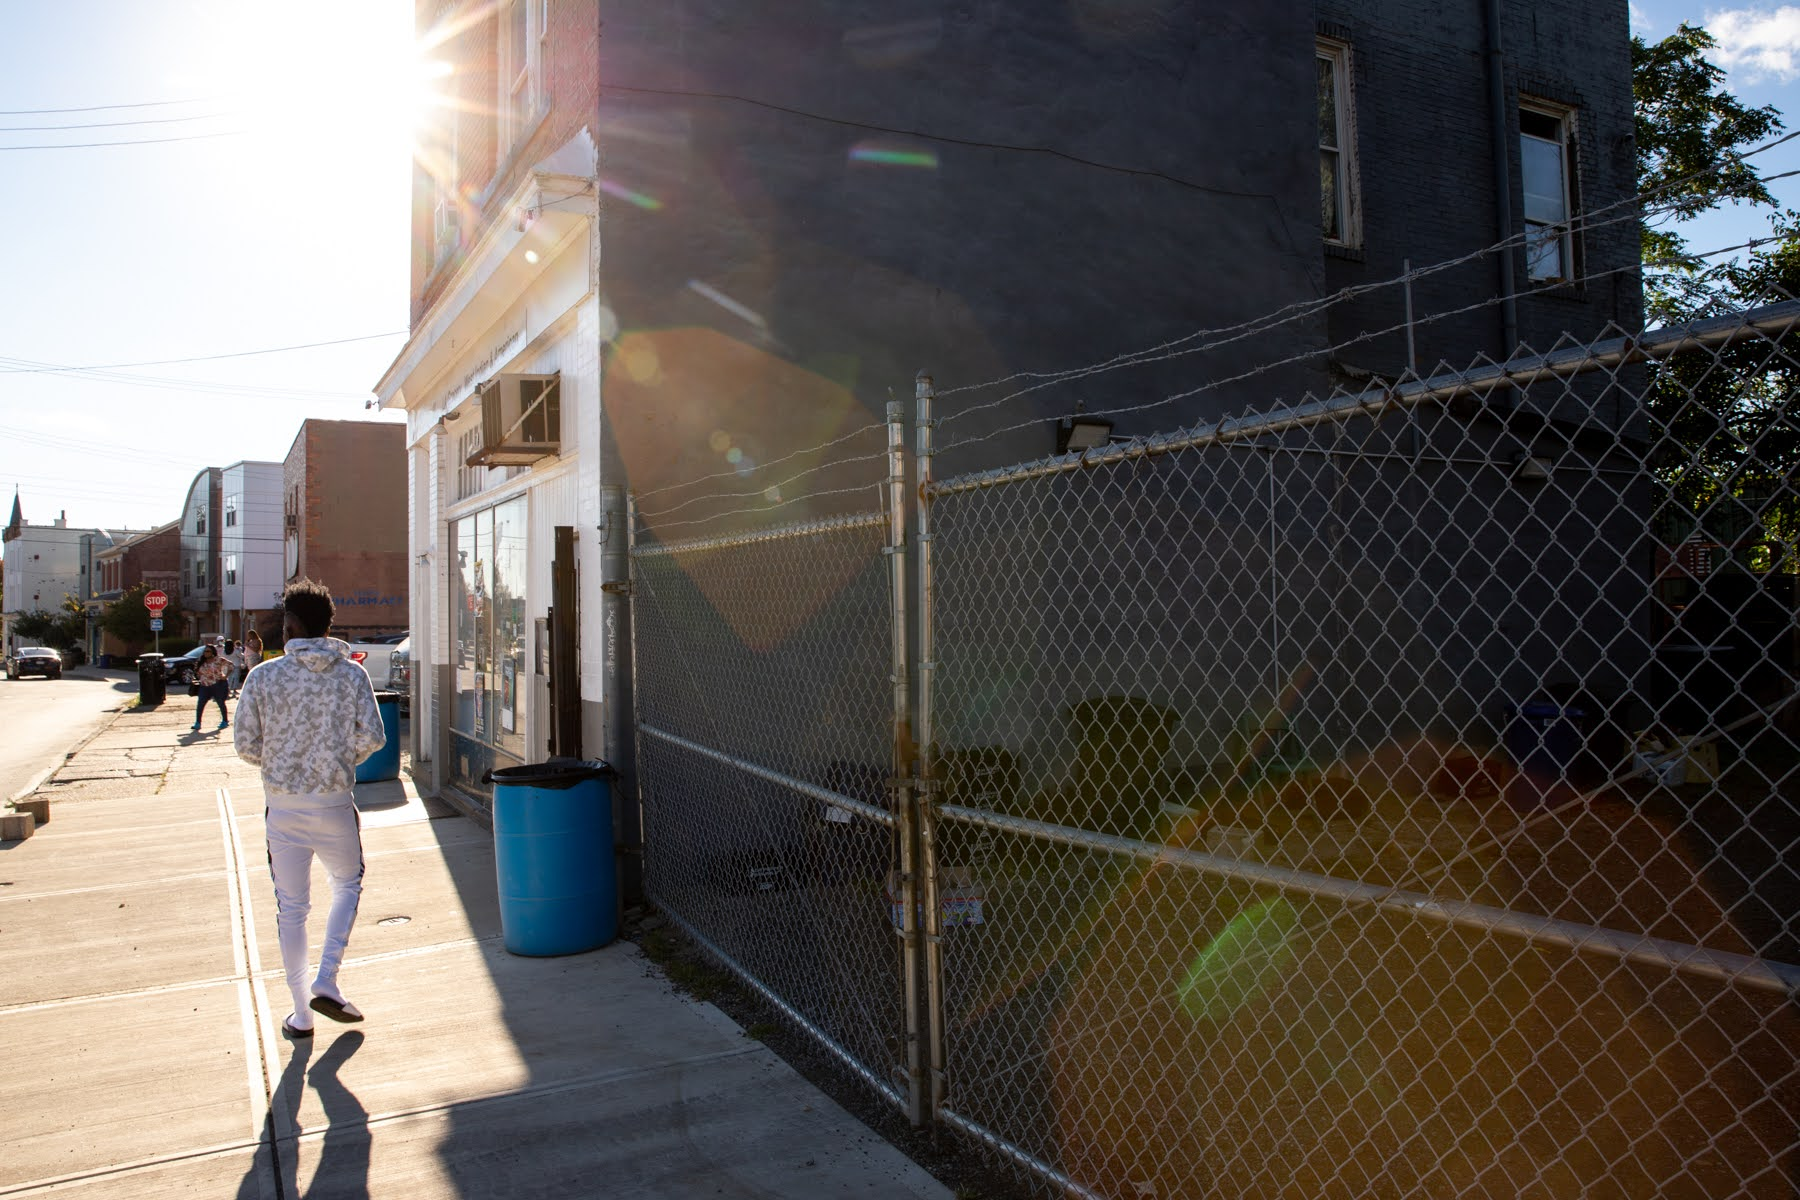 LA Grocery, on Larimer Avenue, and the fenced-in lot next to it, could be beneficiaries of the Avenues of Hope initiative to revitalize seven commercial districts in mostly Black neighborhoods. (Photo by Kaycee Orwig/PublicSource)